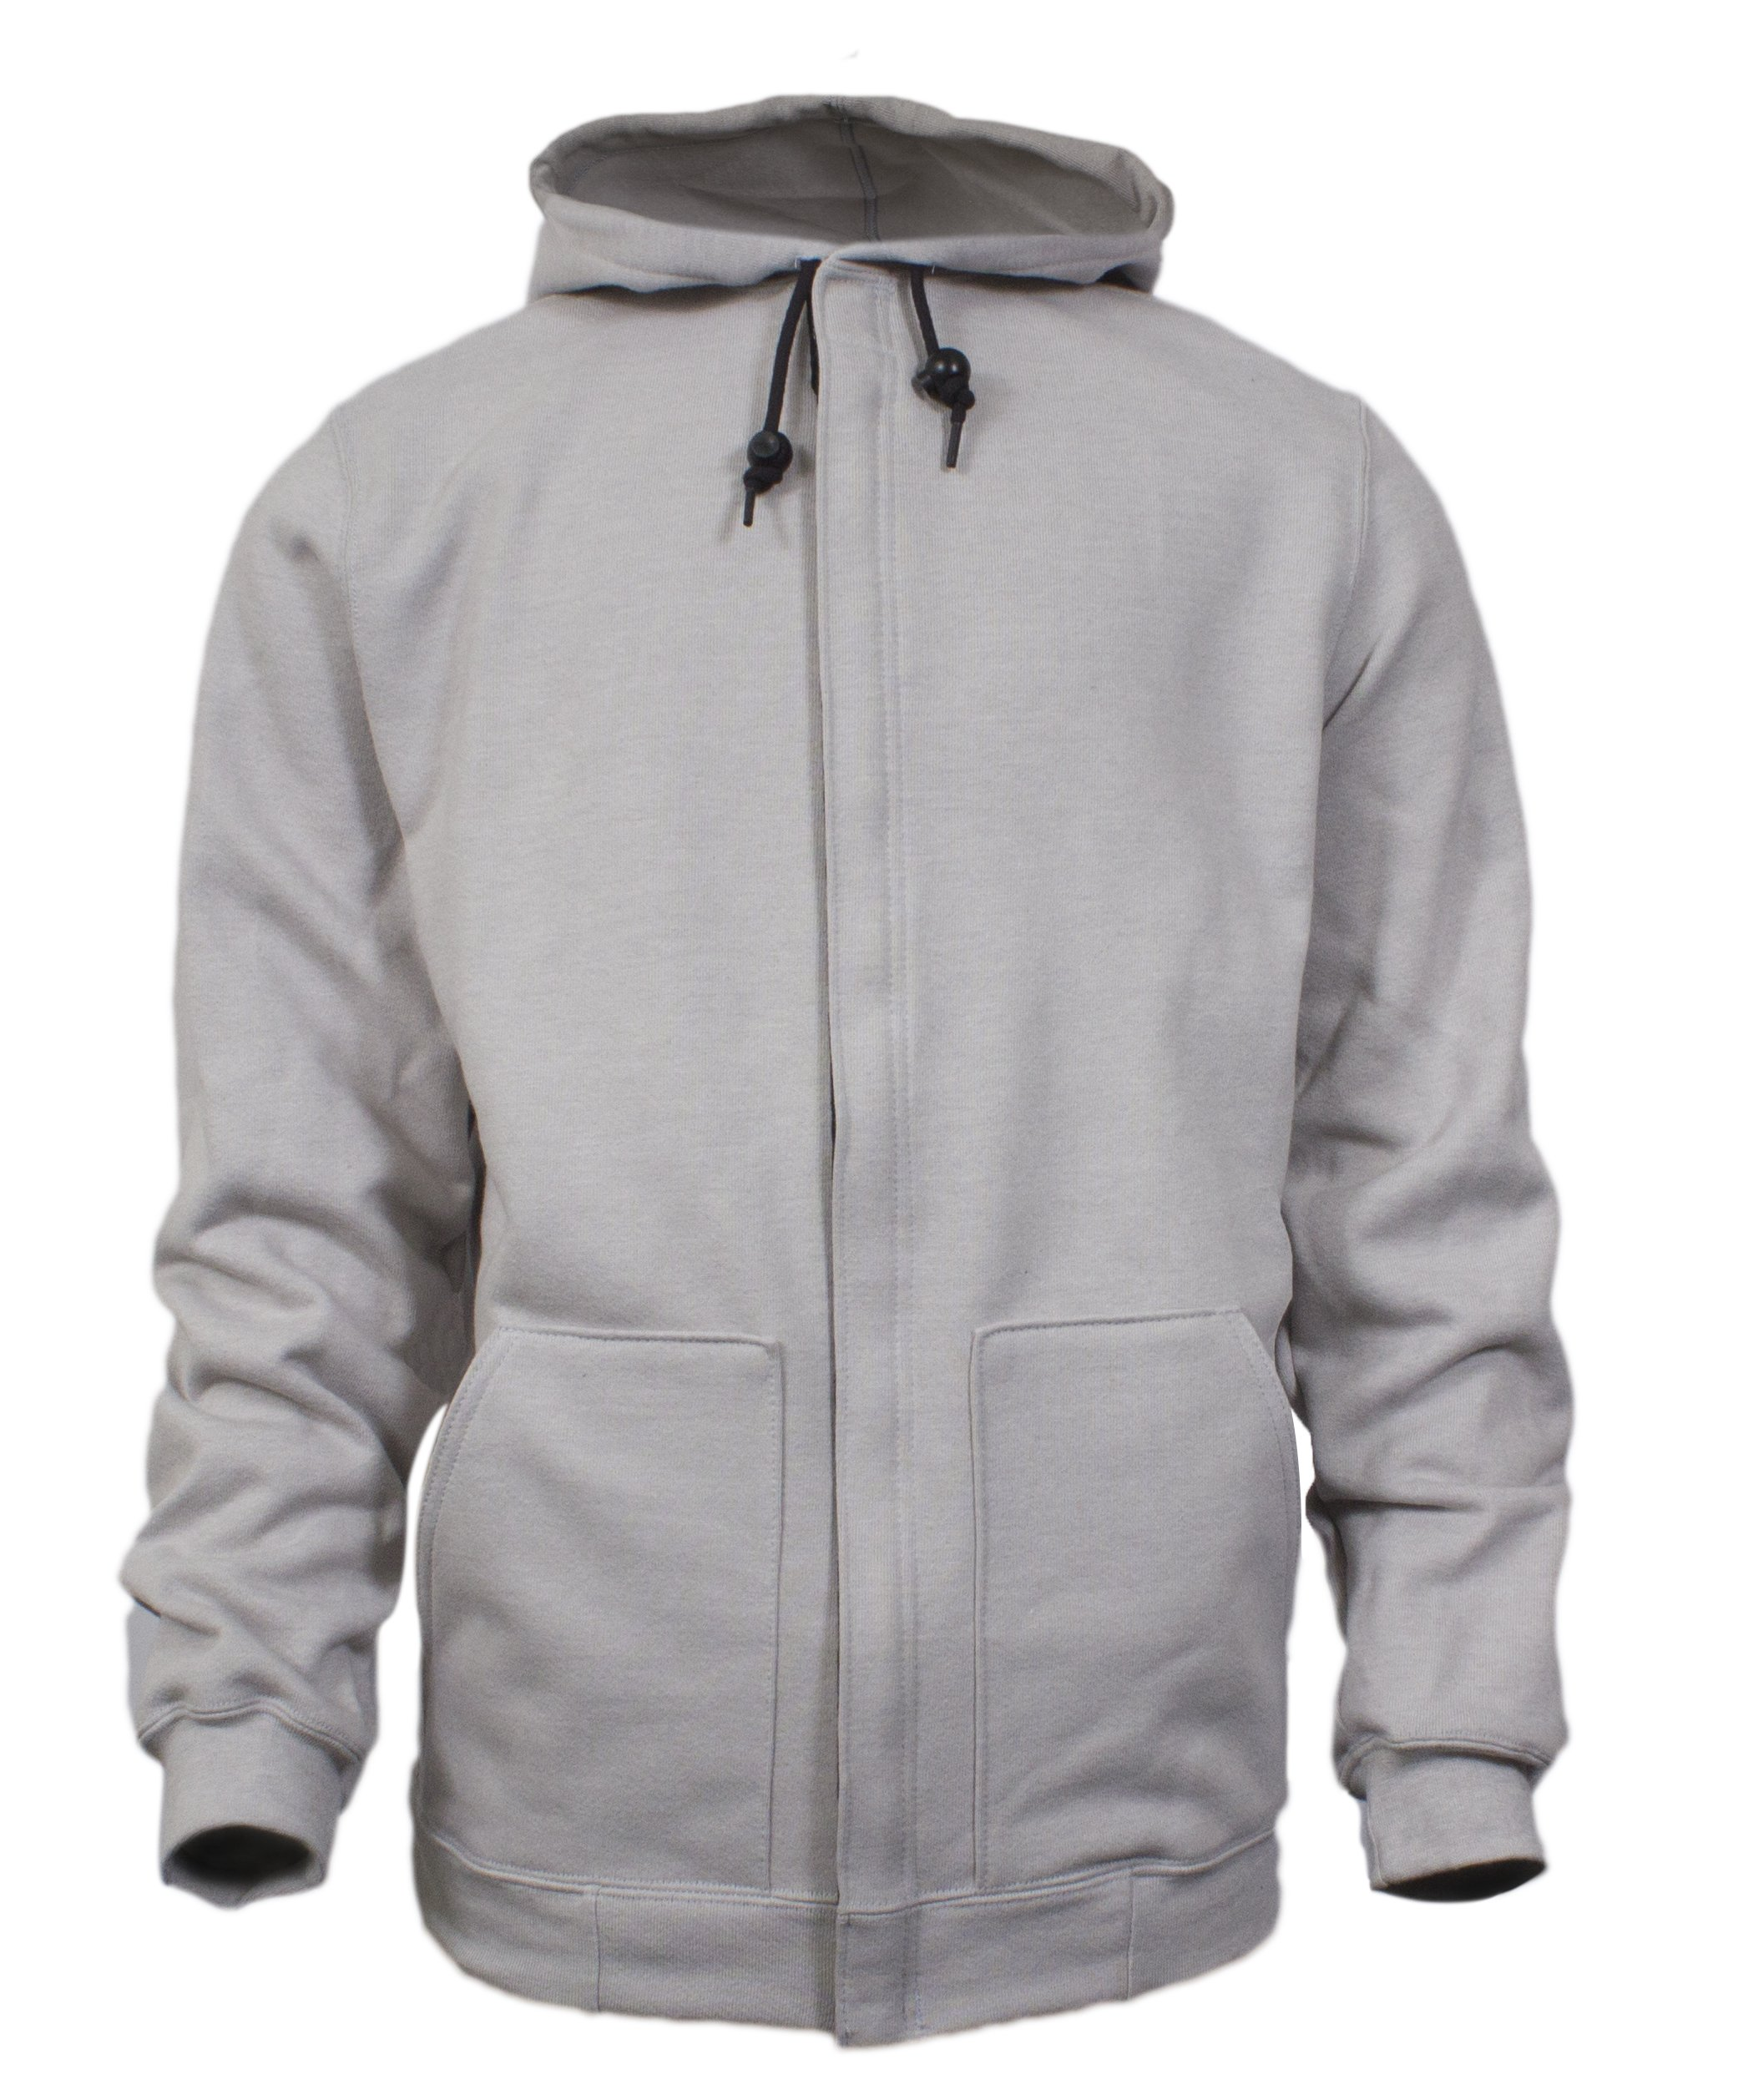 National Safety Apparel C21IG054X FR Hooded Zip Front Sweatshirt, 4X-Large, Grey